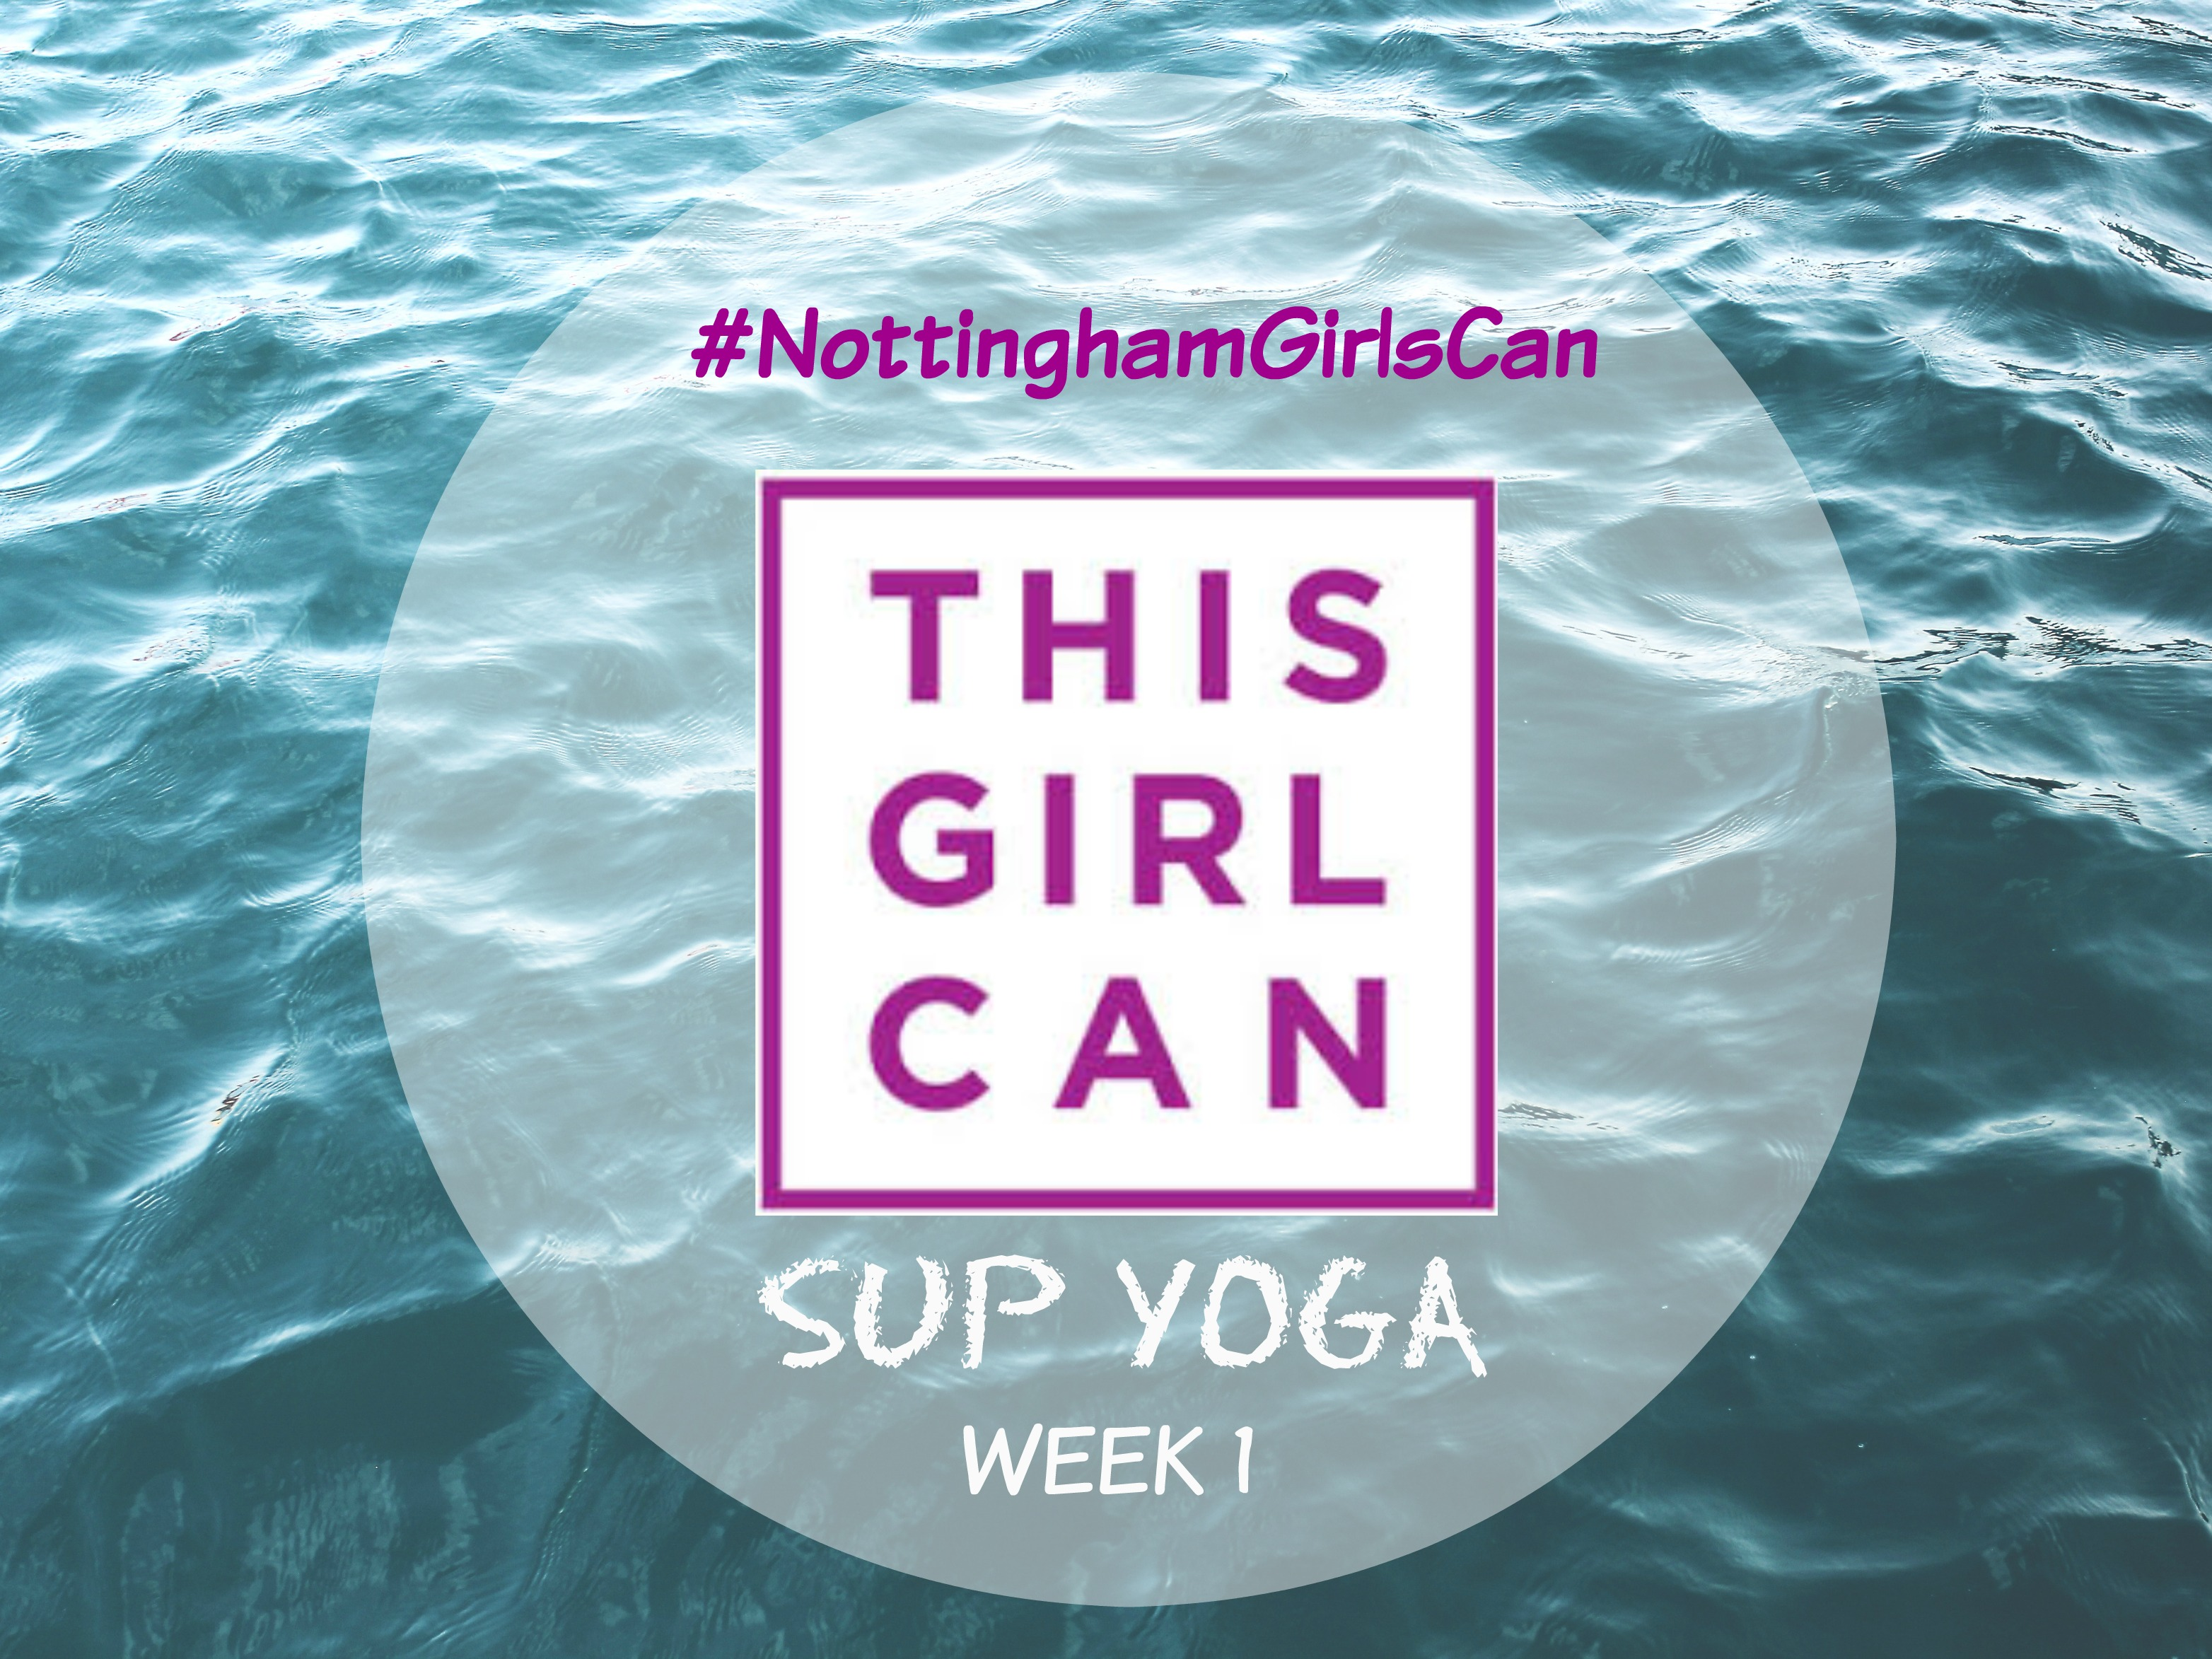 This Girl Can SUP Yoga week 1